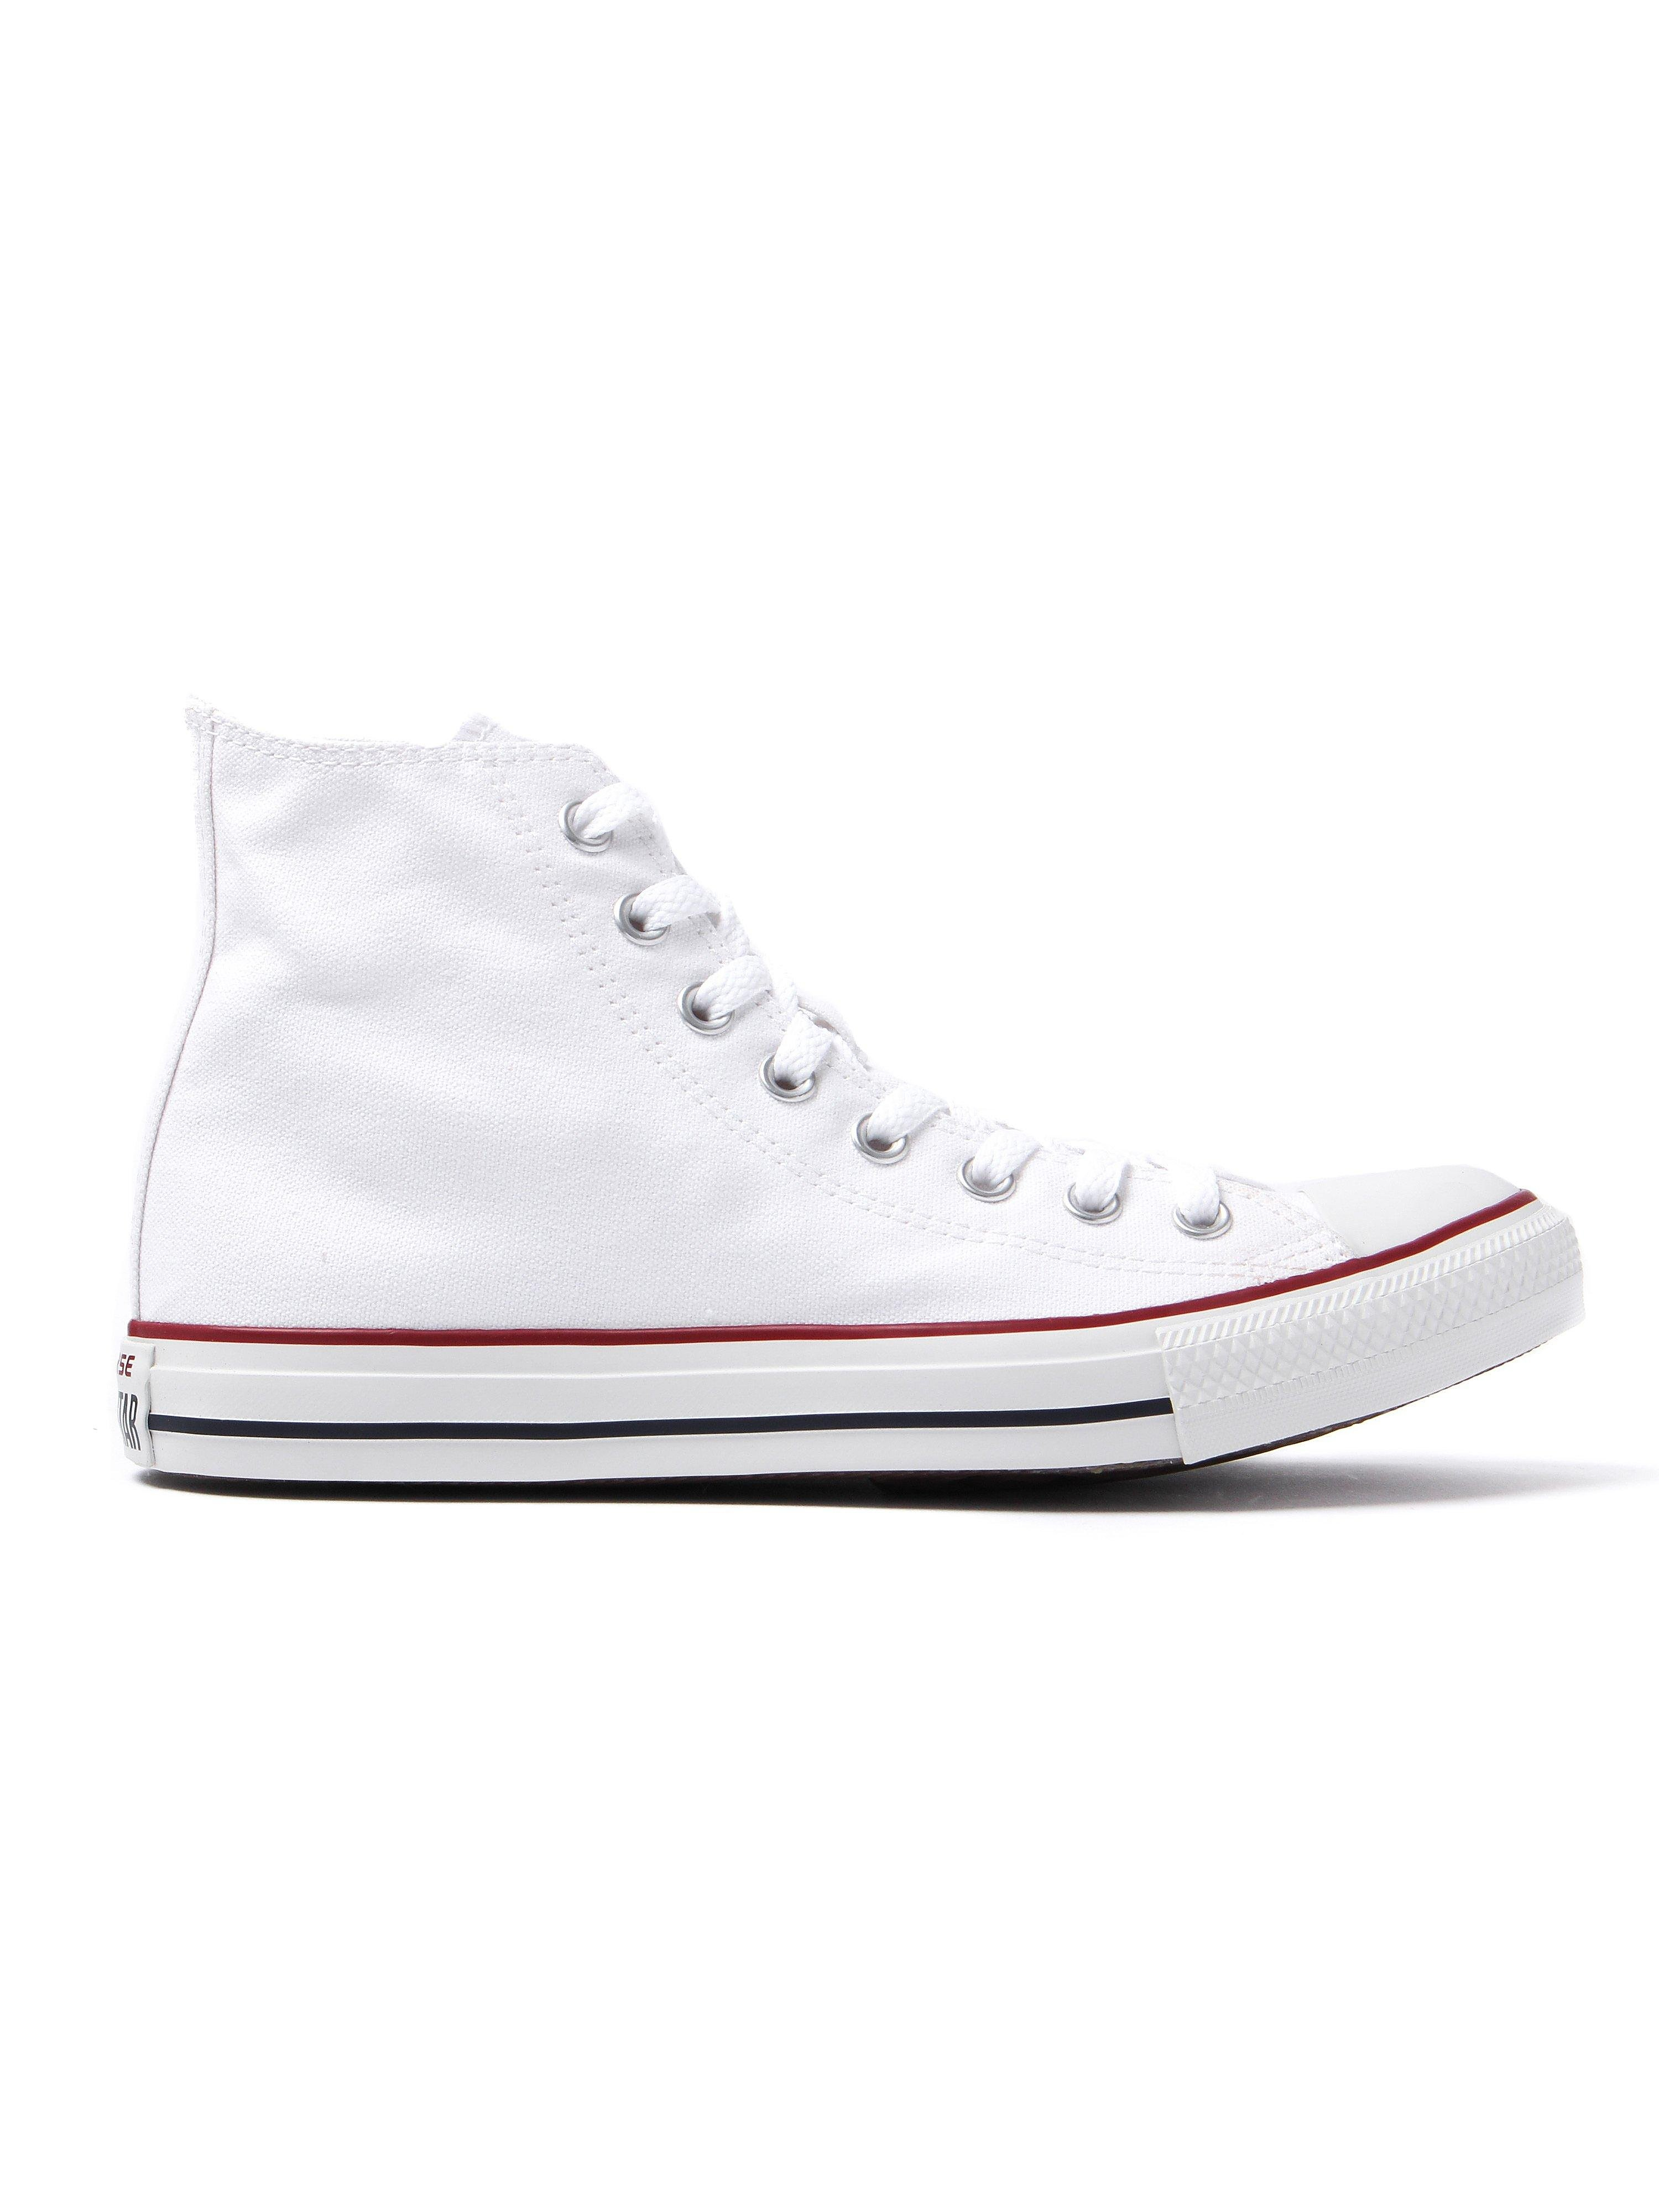 Converse Women's Chuck Taylor All Star HI Trainers - Optical White